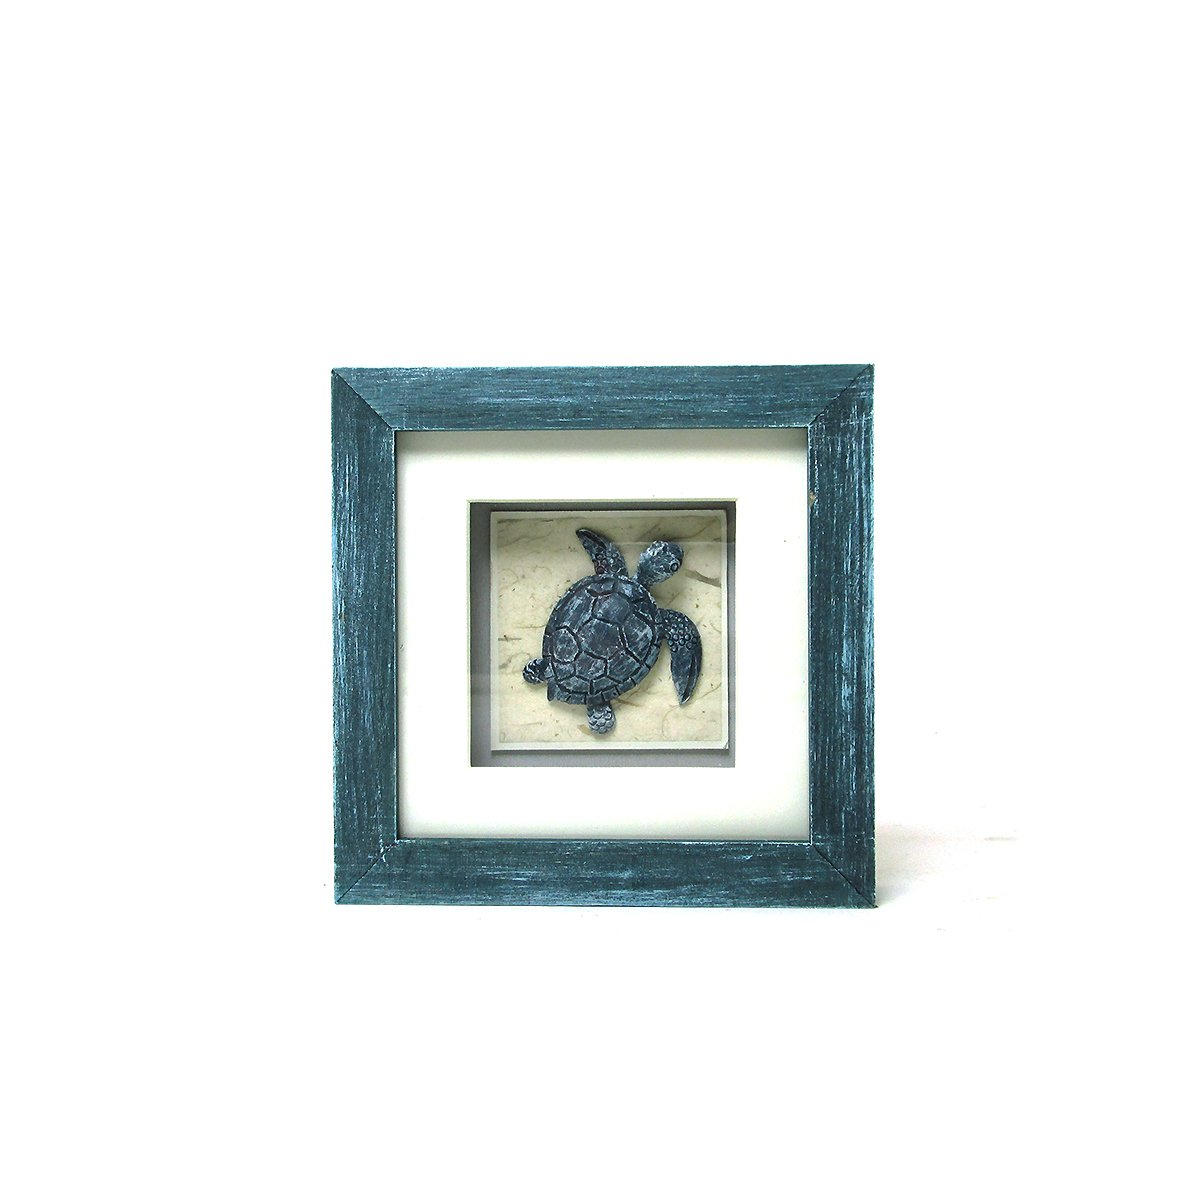 Sea Life Collection - Decorative Turtle Blue Shadow Box by WonderMolly